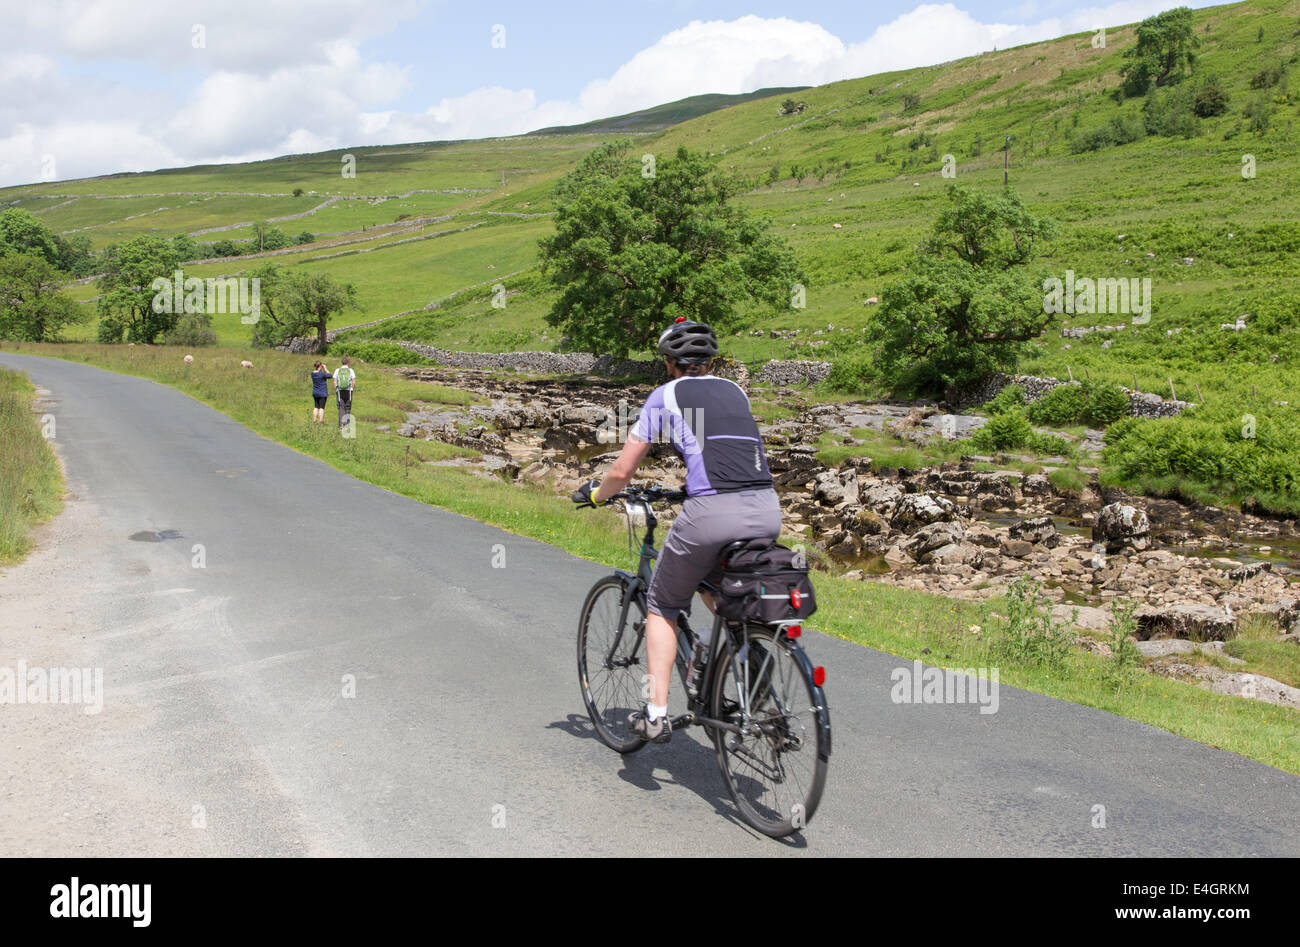 Cyclist in Wharfdale in the Yorkshire Dales National Park, North Yorkshire, England, UK - Stock Image